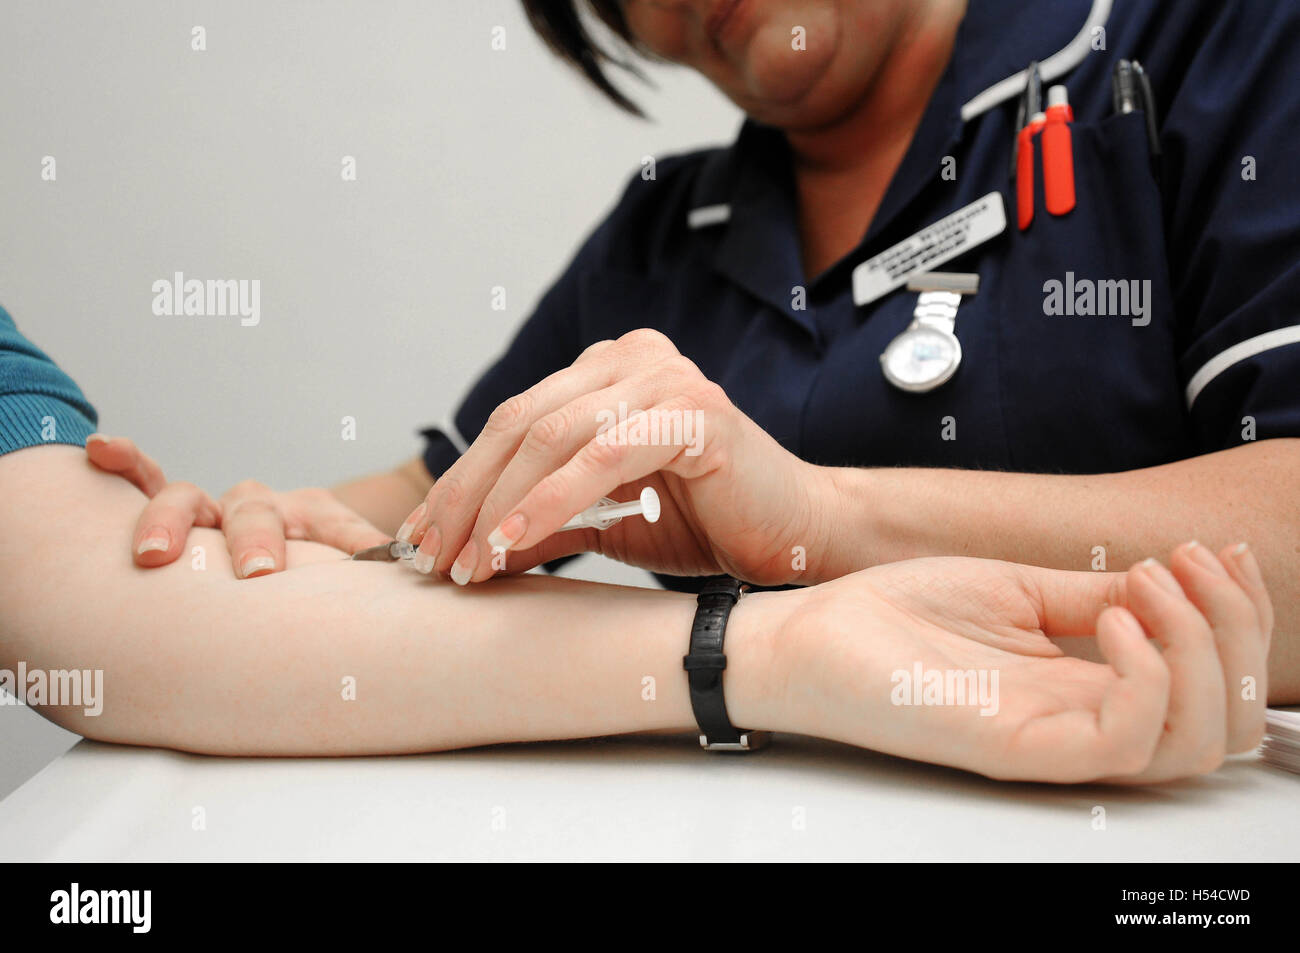 A nurse takes blood during a blood test at a doctor's surgery. - Stock Image